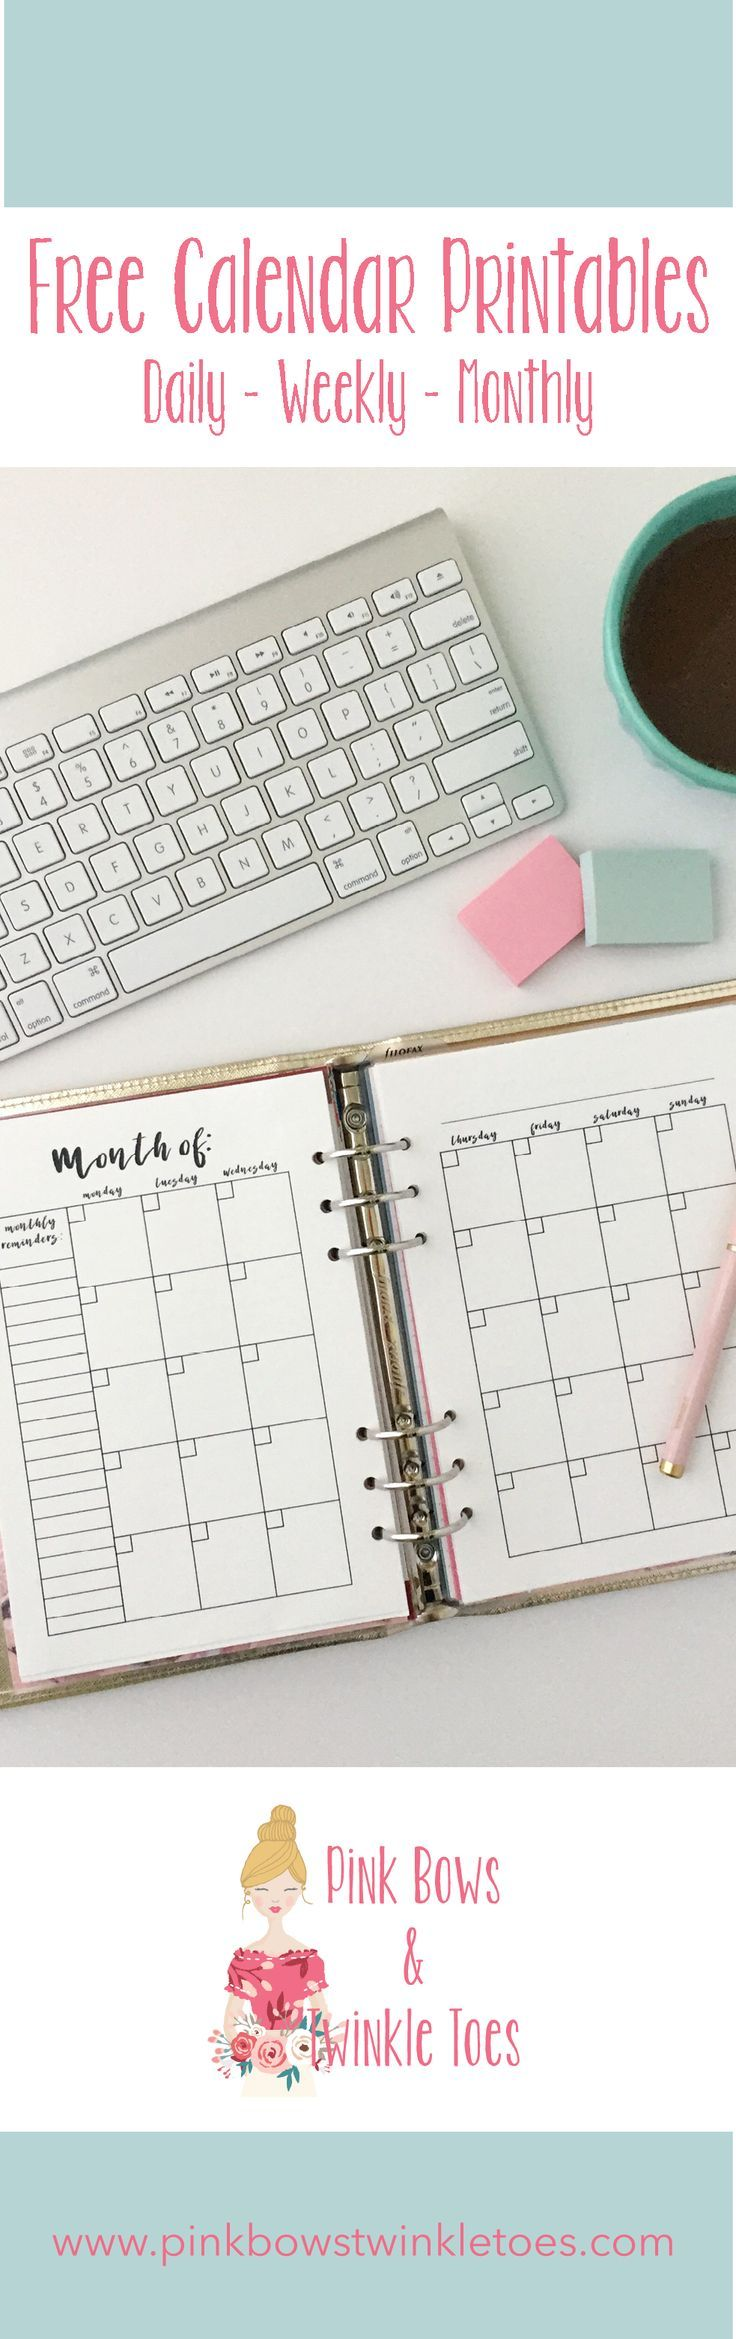 Calendar Roundup: Free Planner Printables - Daily weekly monthly calendar planning inserts for A5 planners and mini binders - instant PDF download - Pink Bows & Twinkle Toes